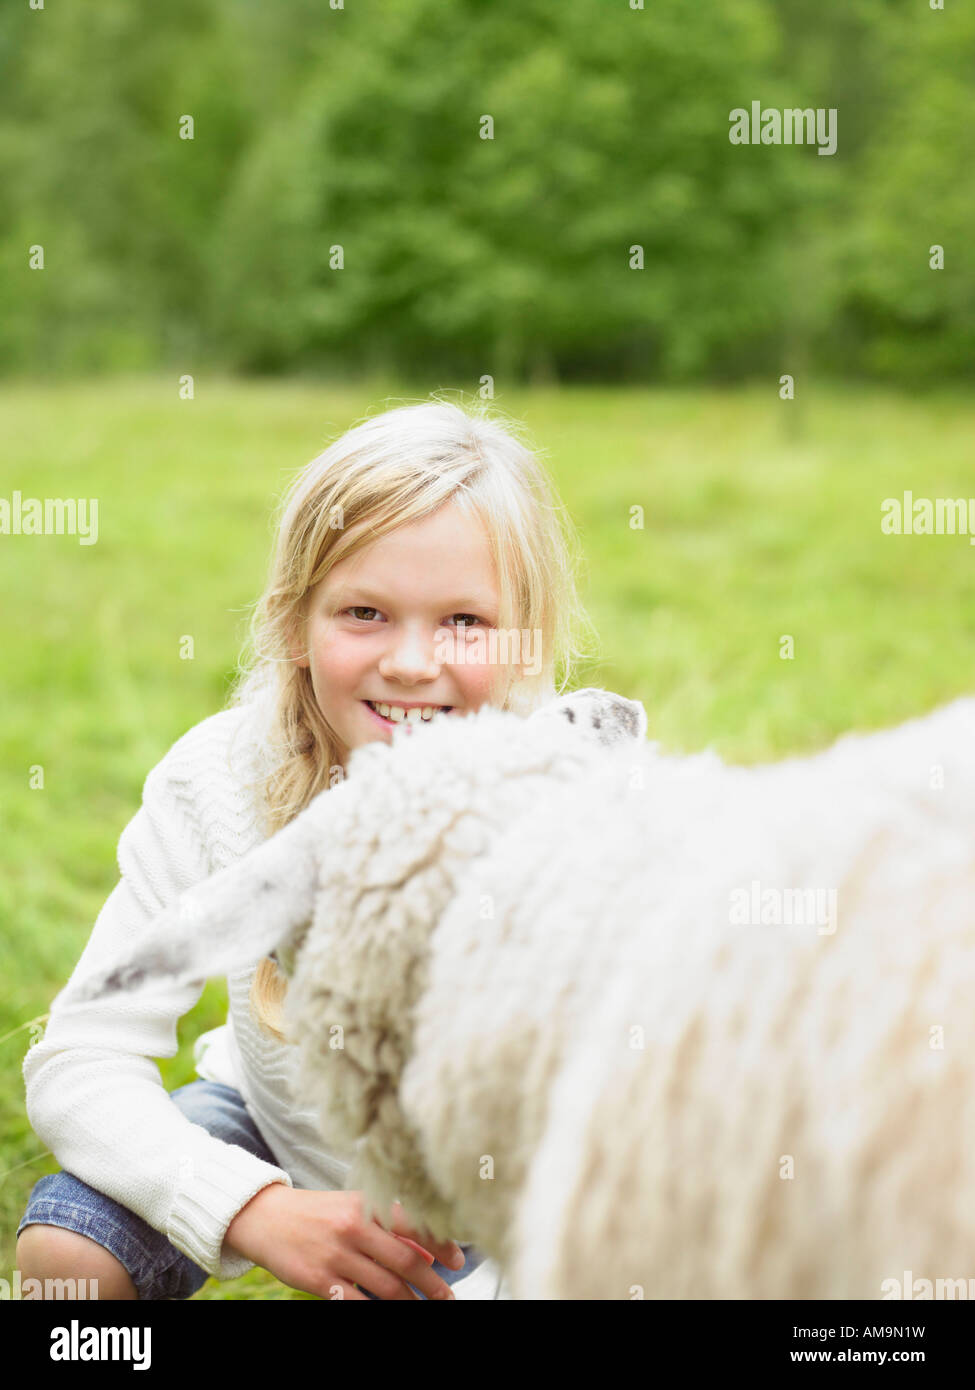 Young girl smiling and crouching by a sheep in a field. - Stock Image